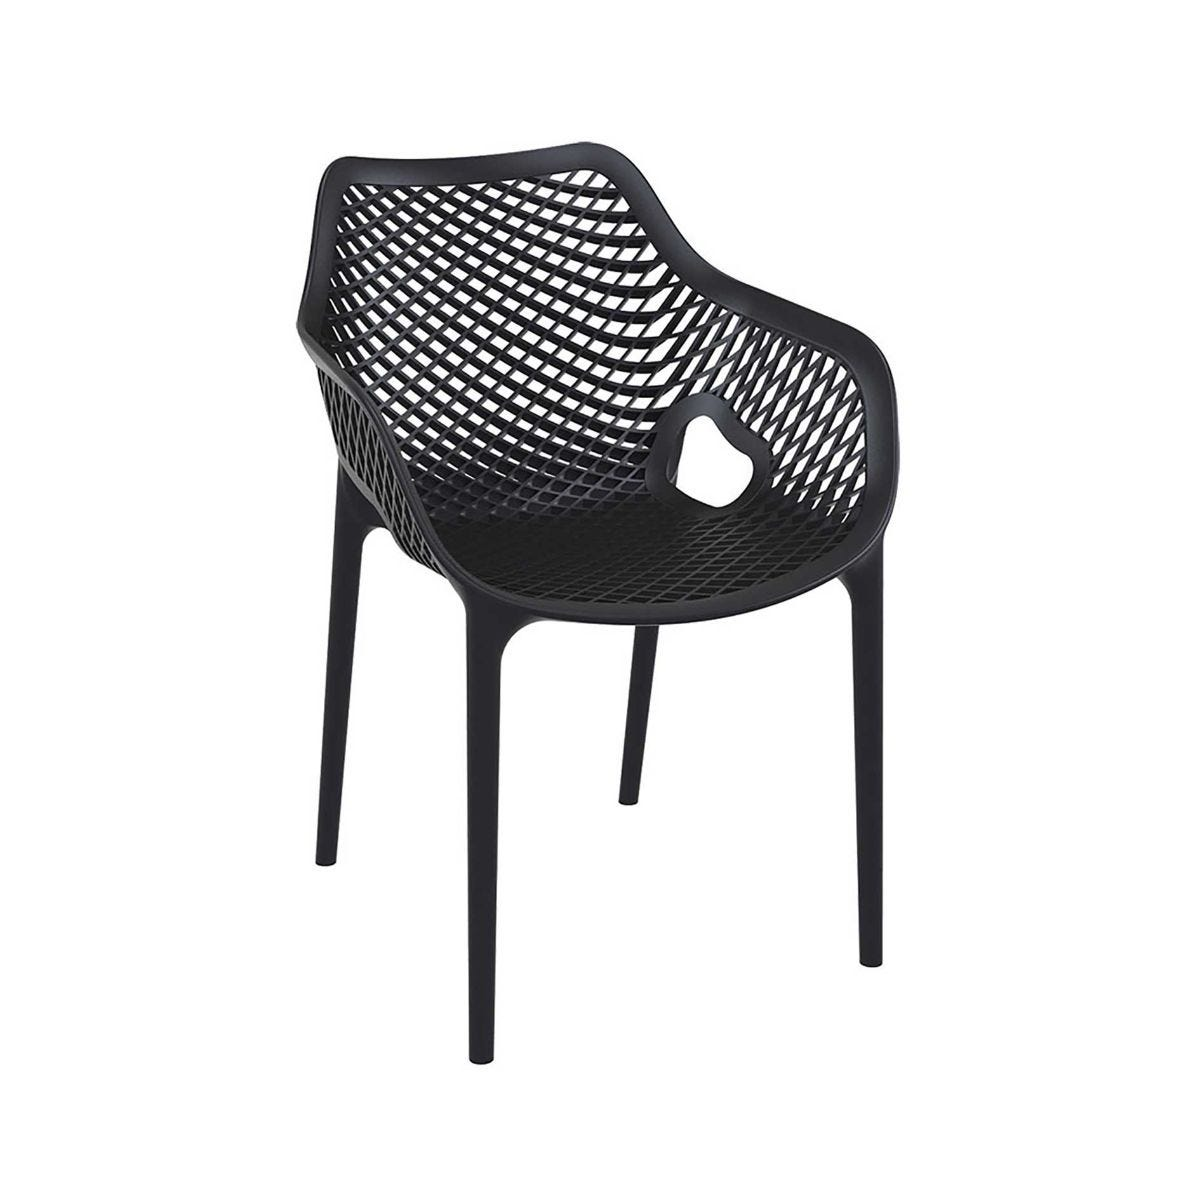 Spring Outdoor Arm Chair, Black